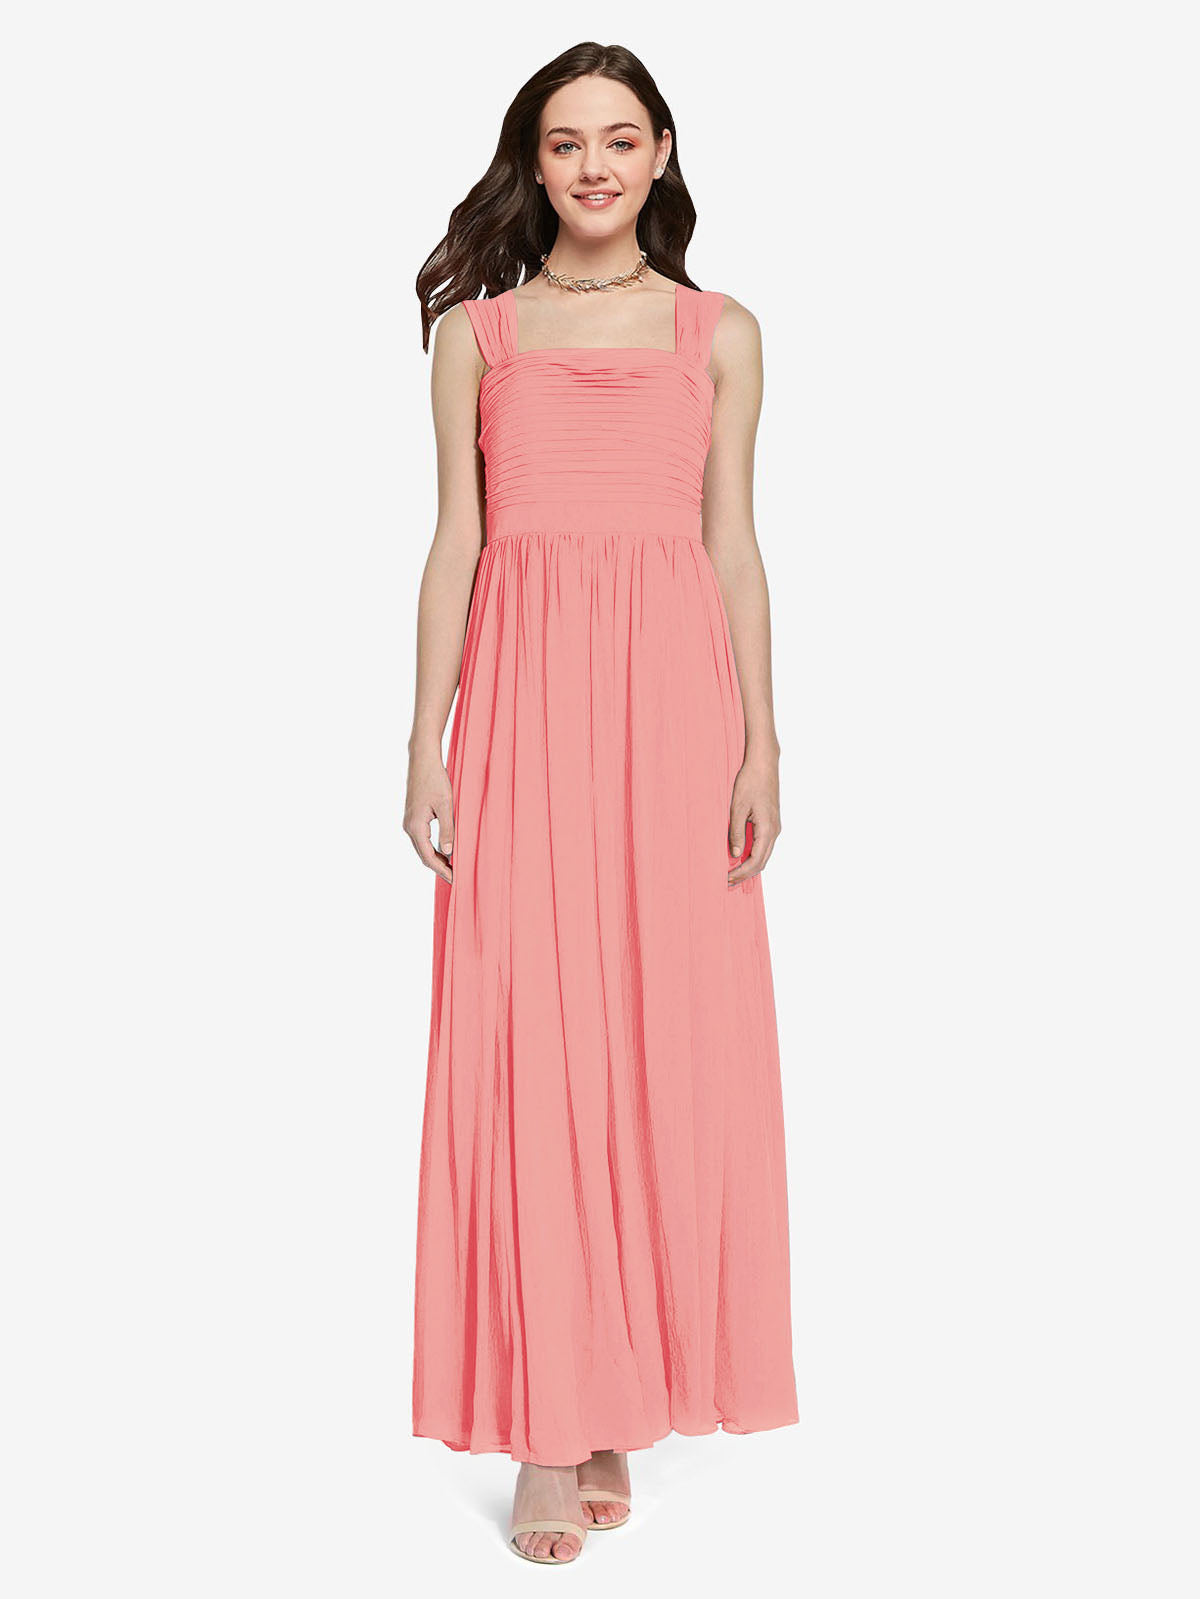 Long A-Line Square Sleeveless Watermelon Chiffon Bridesmaid Dress Aldridge